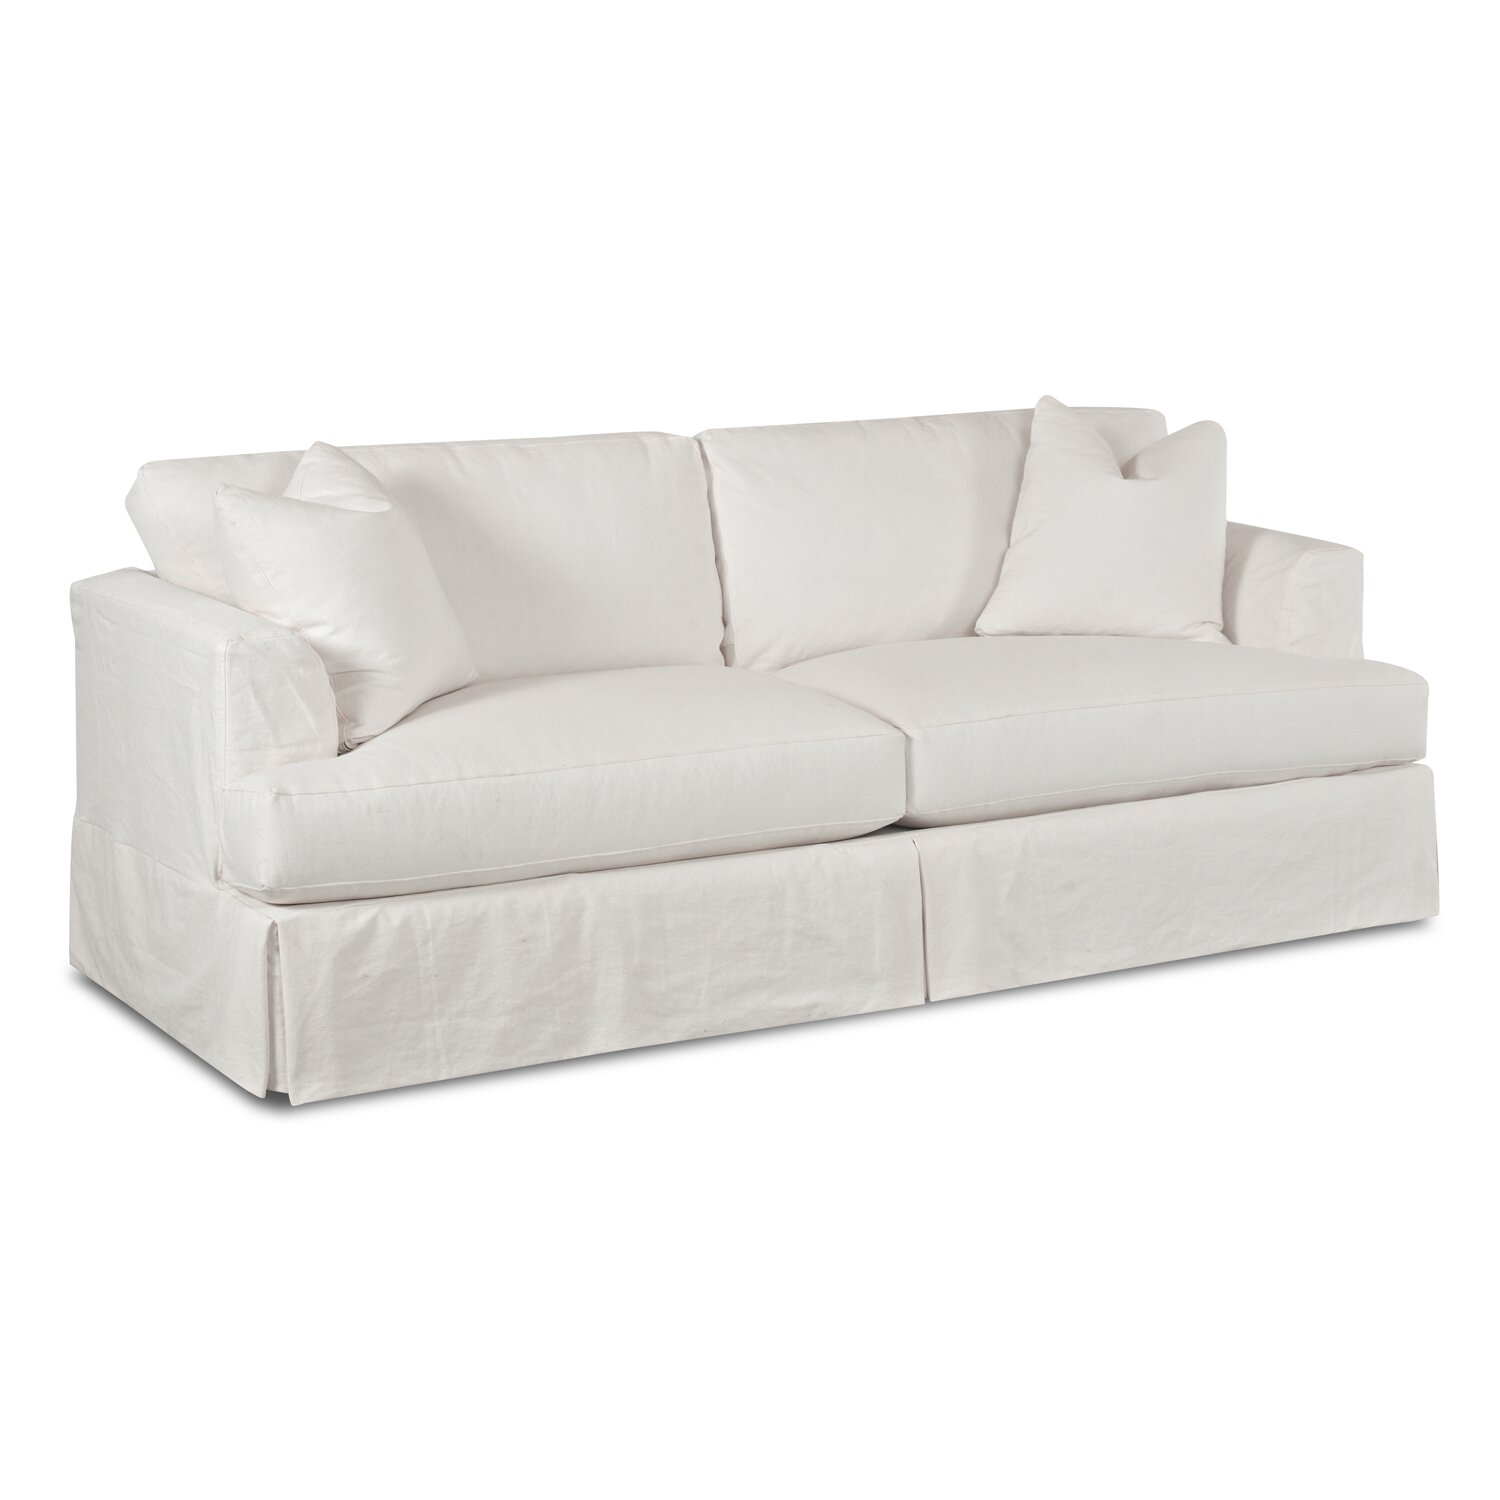 Wayfair Custom Upholstery Carly Sleeper Sofa Reviews